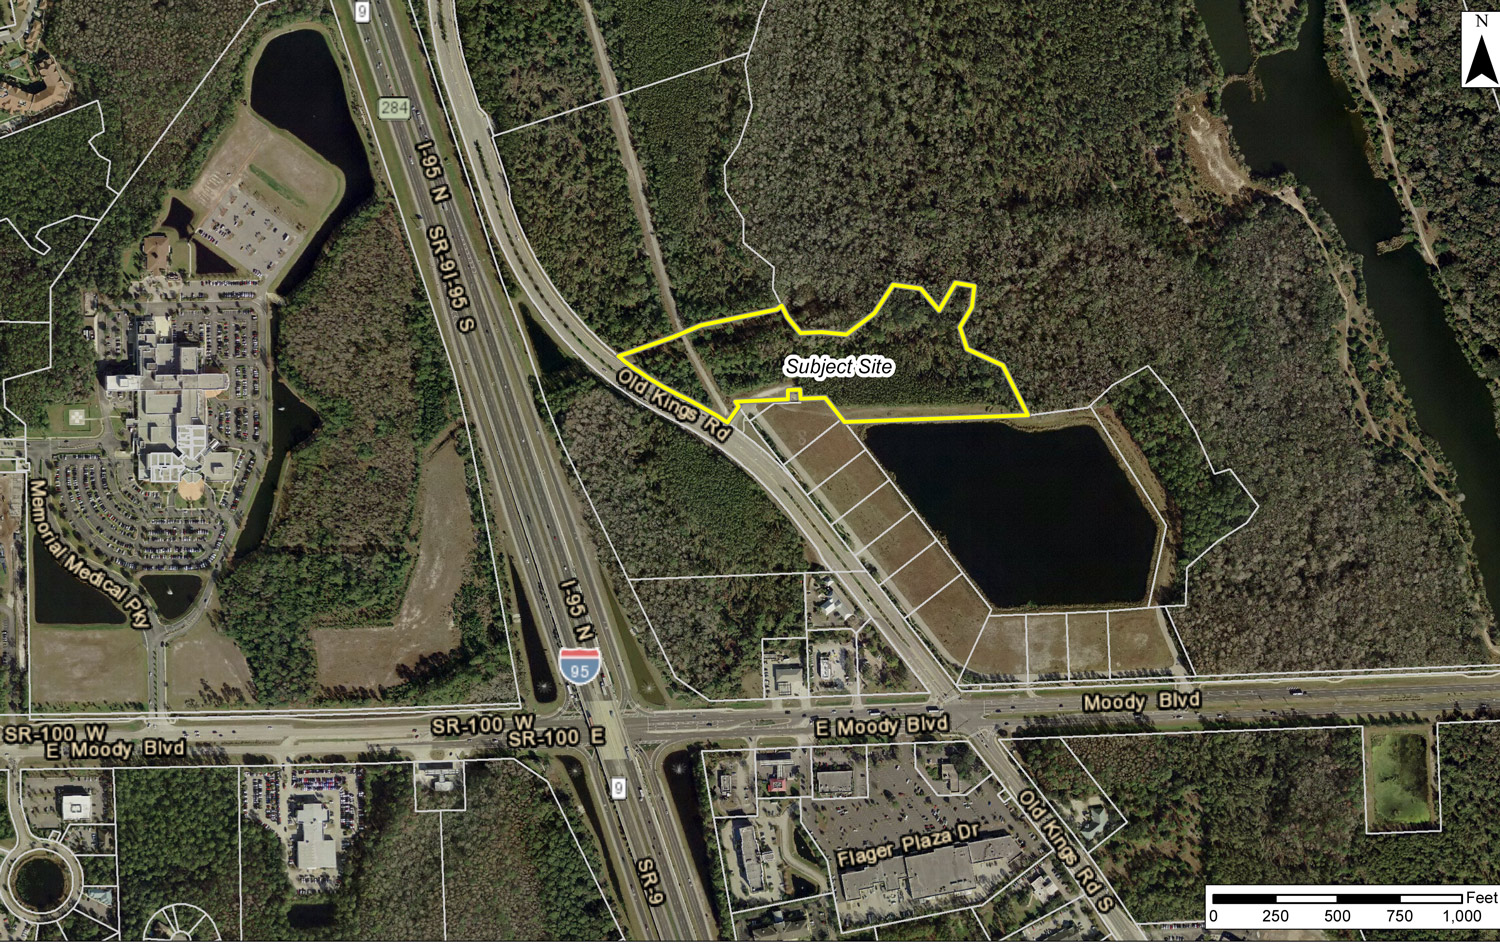 The 12 acres that would be rezoned for apartments, outlined in yellow. Click on the image for larger view.